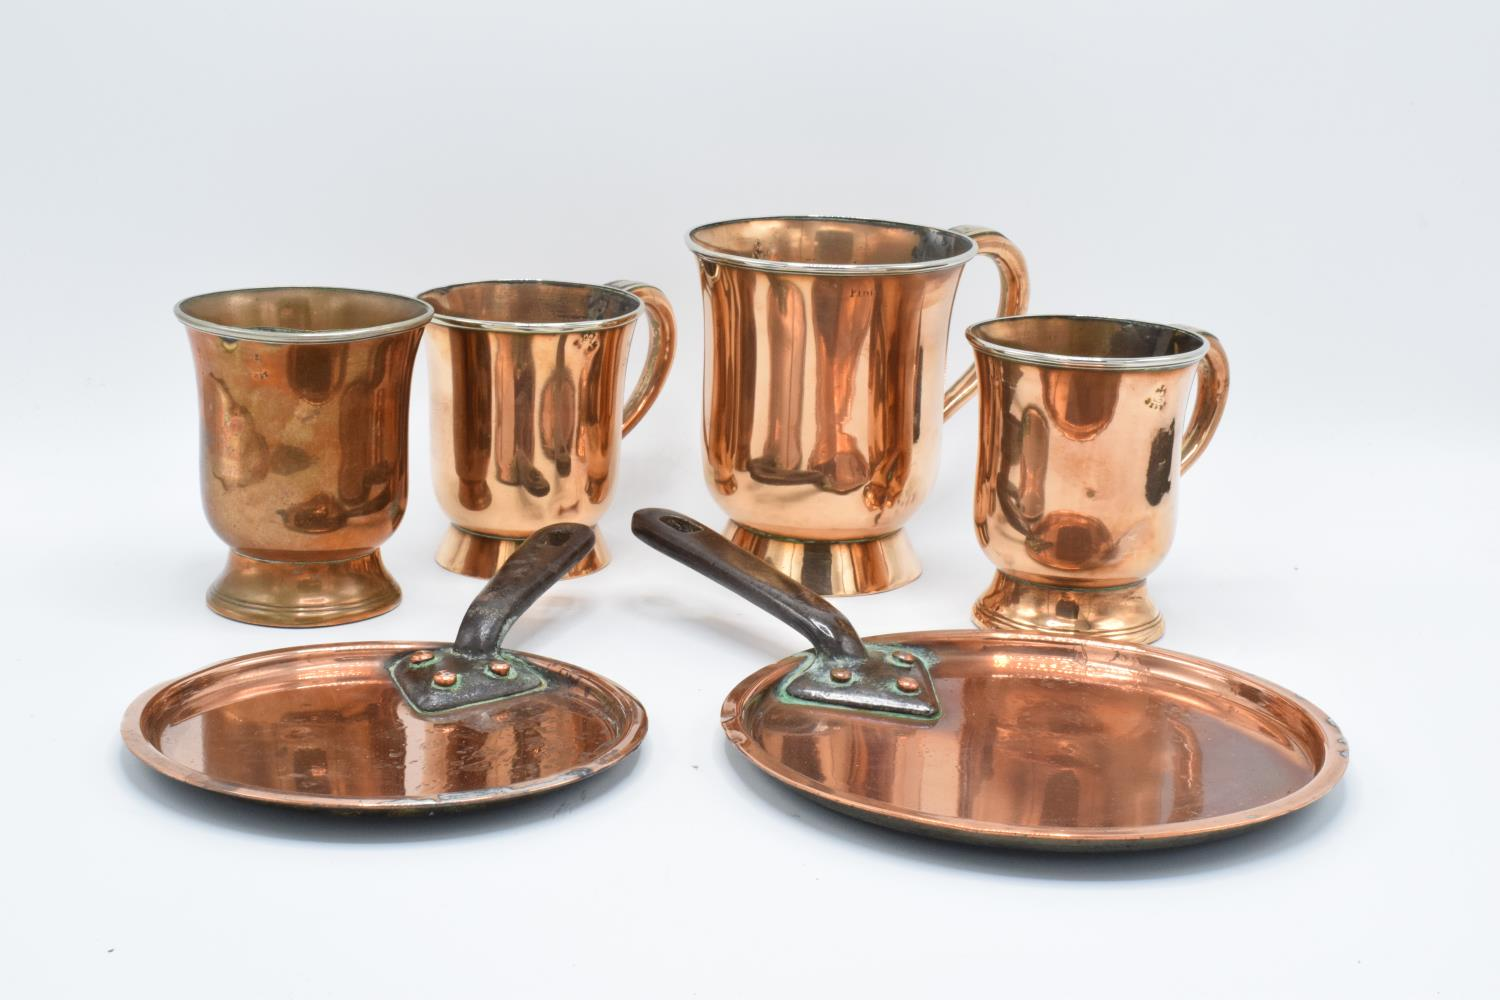 A collection of Askew Maker of Nottingham tankards (1/2 pint, pint etc) together with 2 victorian